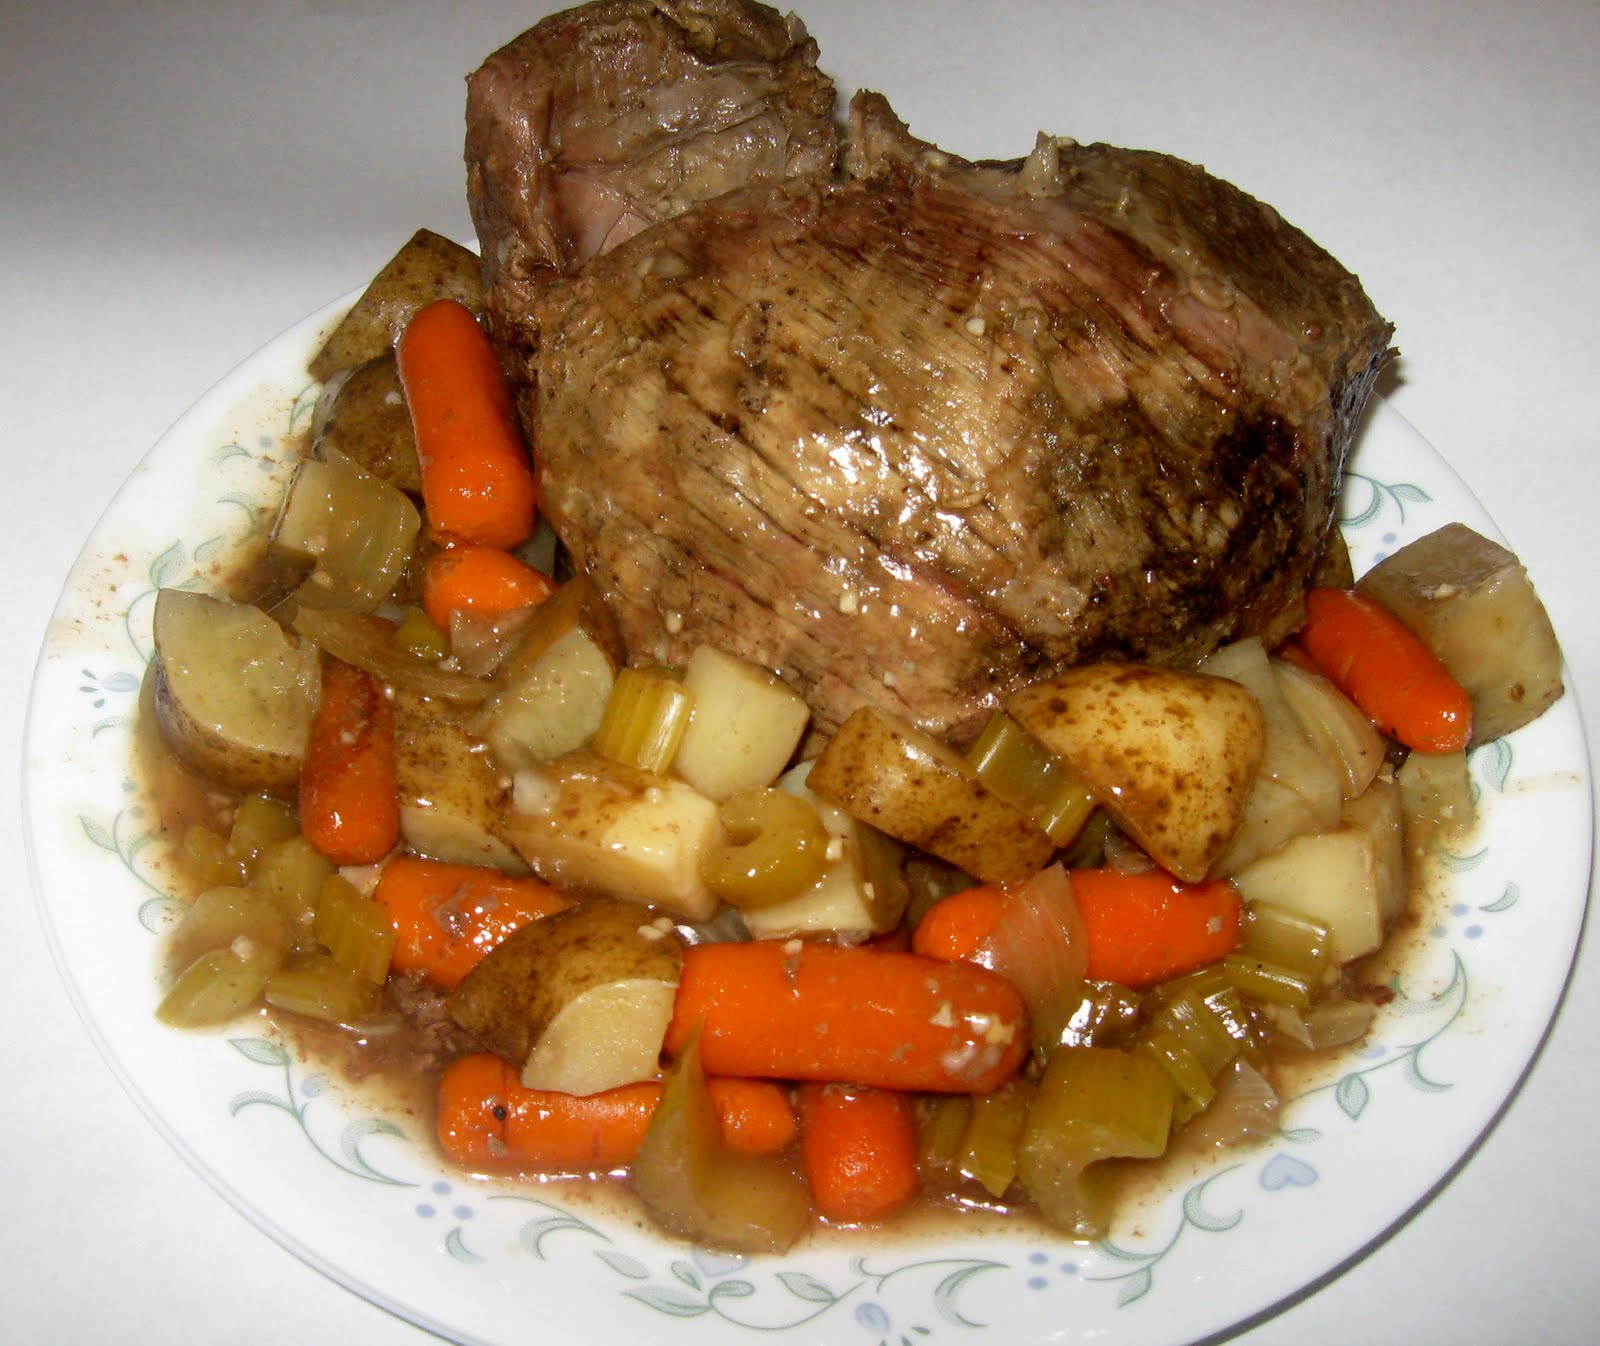 slow-cooker-top-round-roast-with-potatoes-and-vegetables